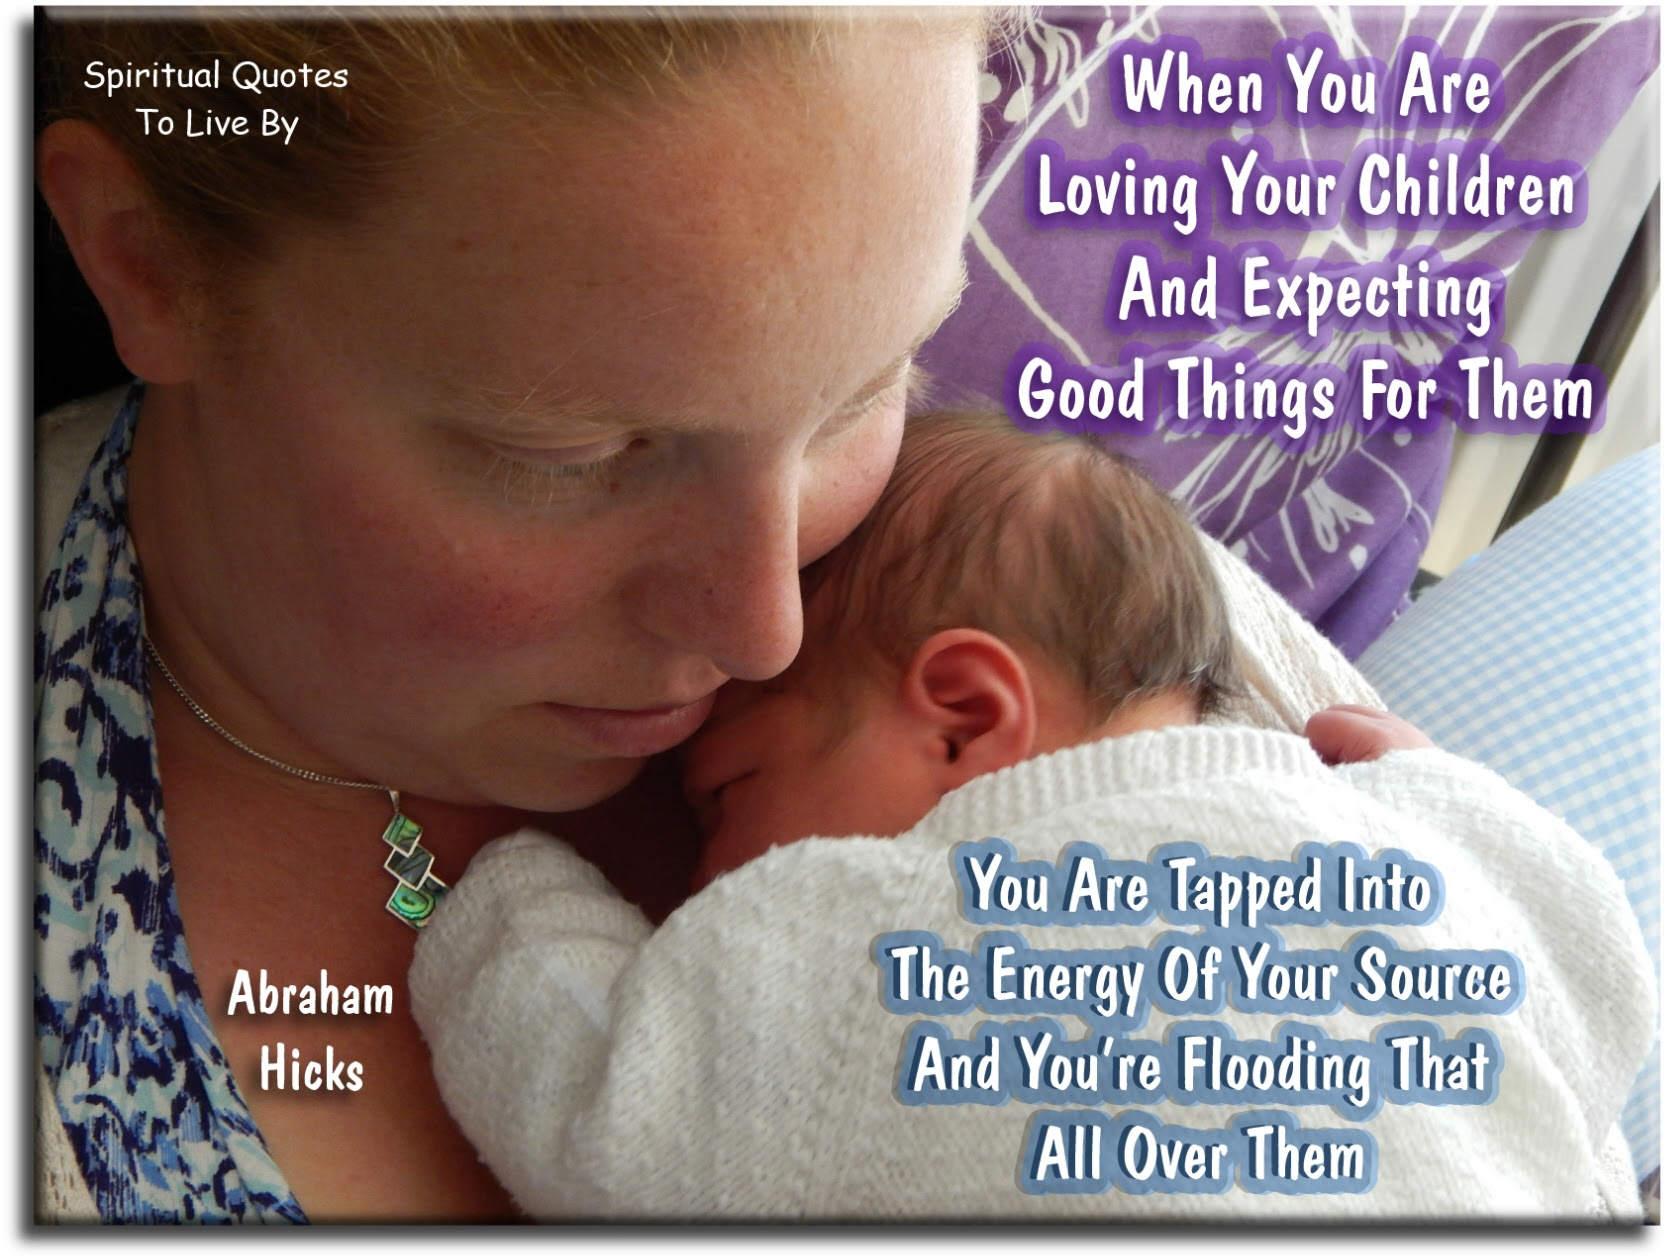 Abraham Hicks Quotes About Children To Live By